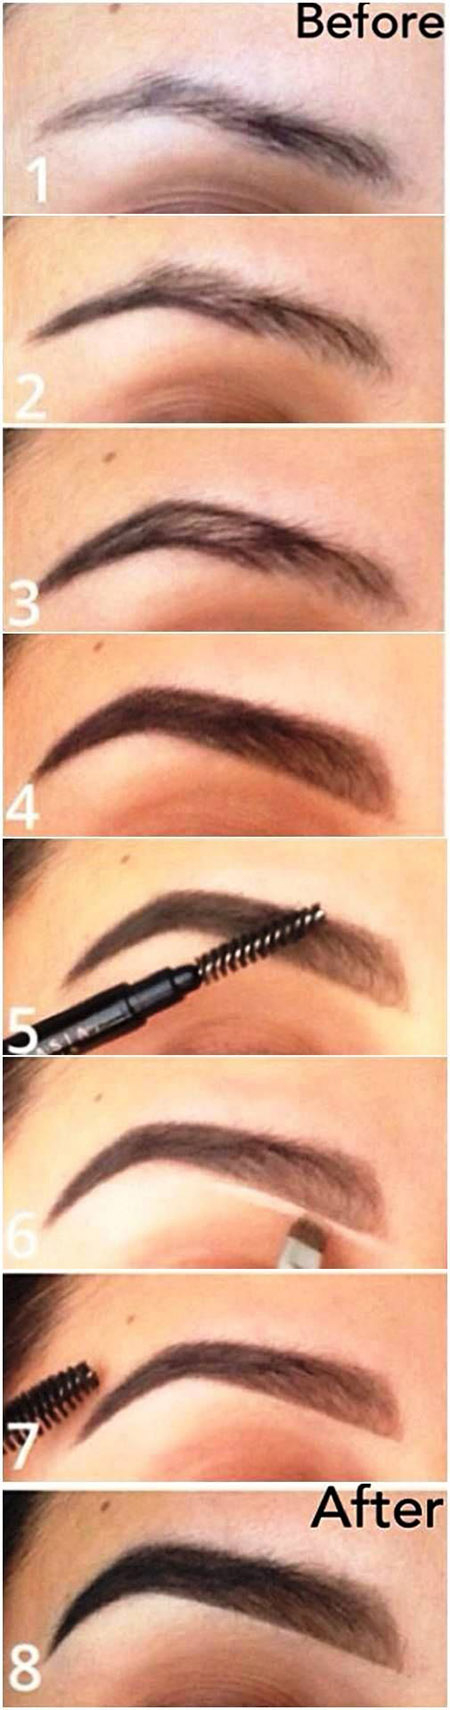 2 How To Make Your Eyebrows Thicker 17df197a7